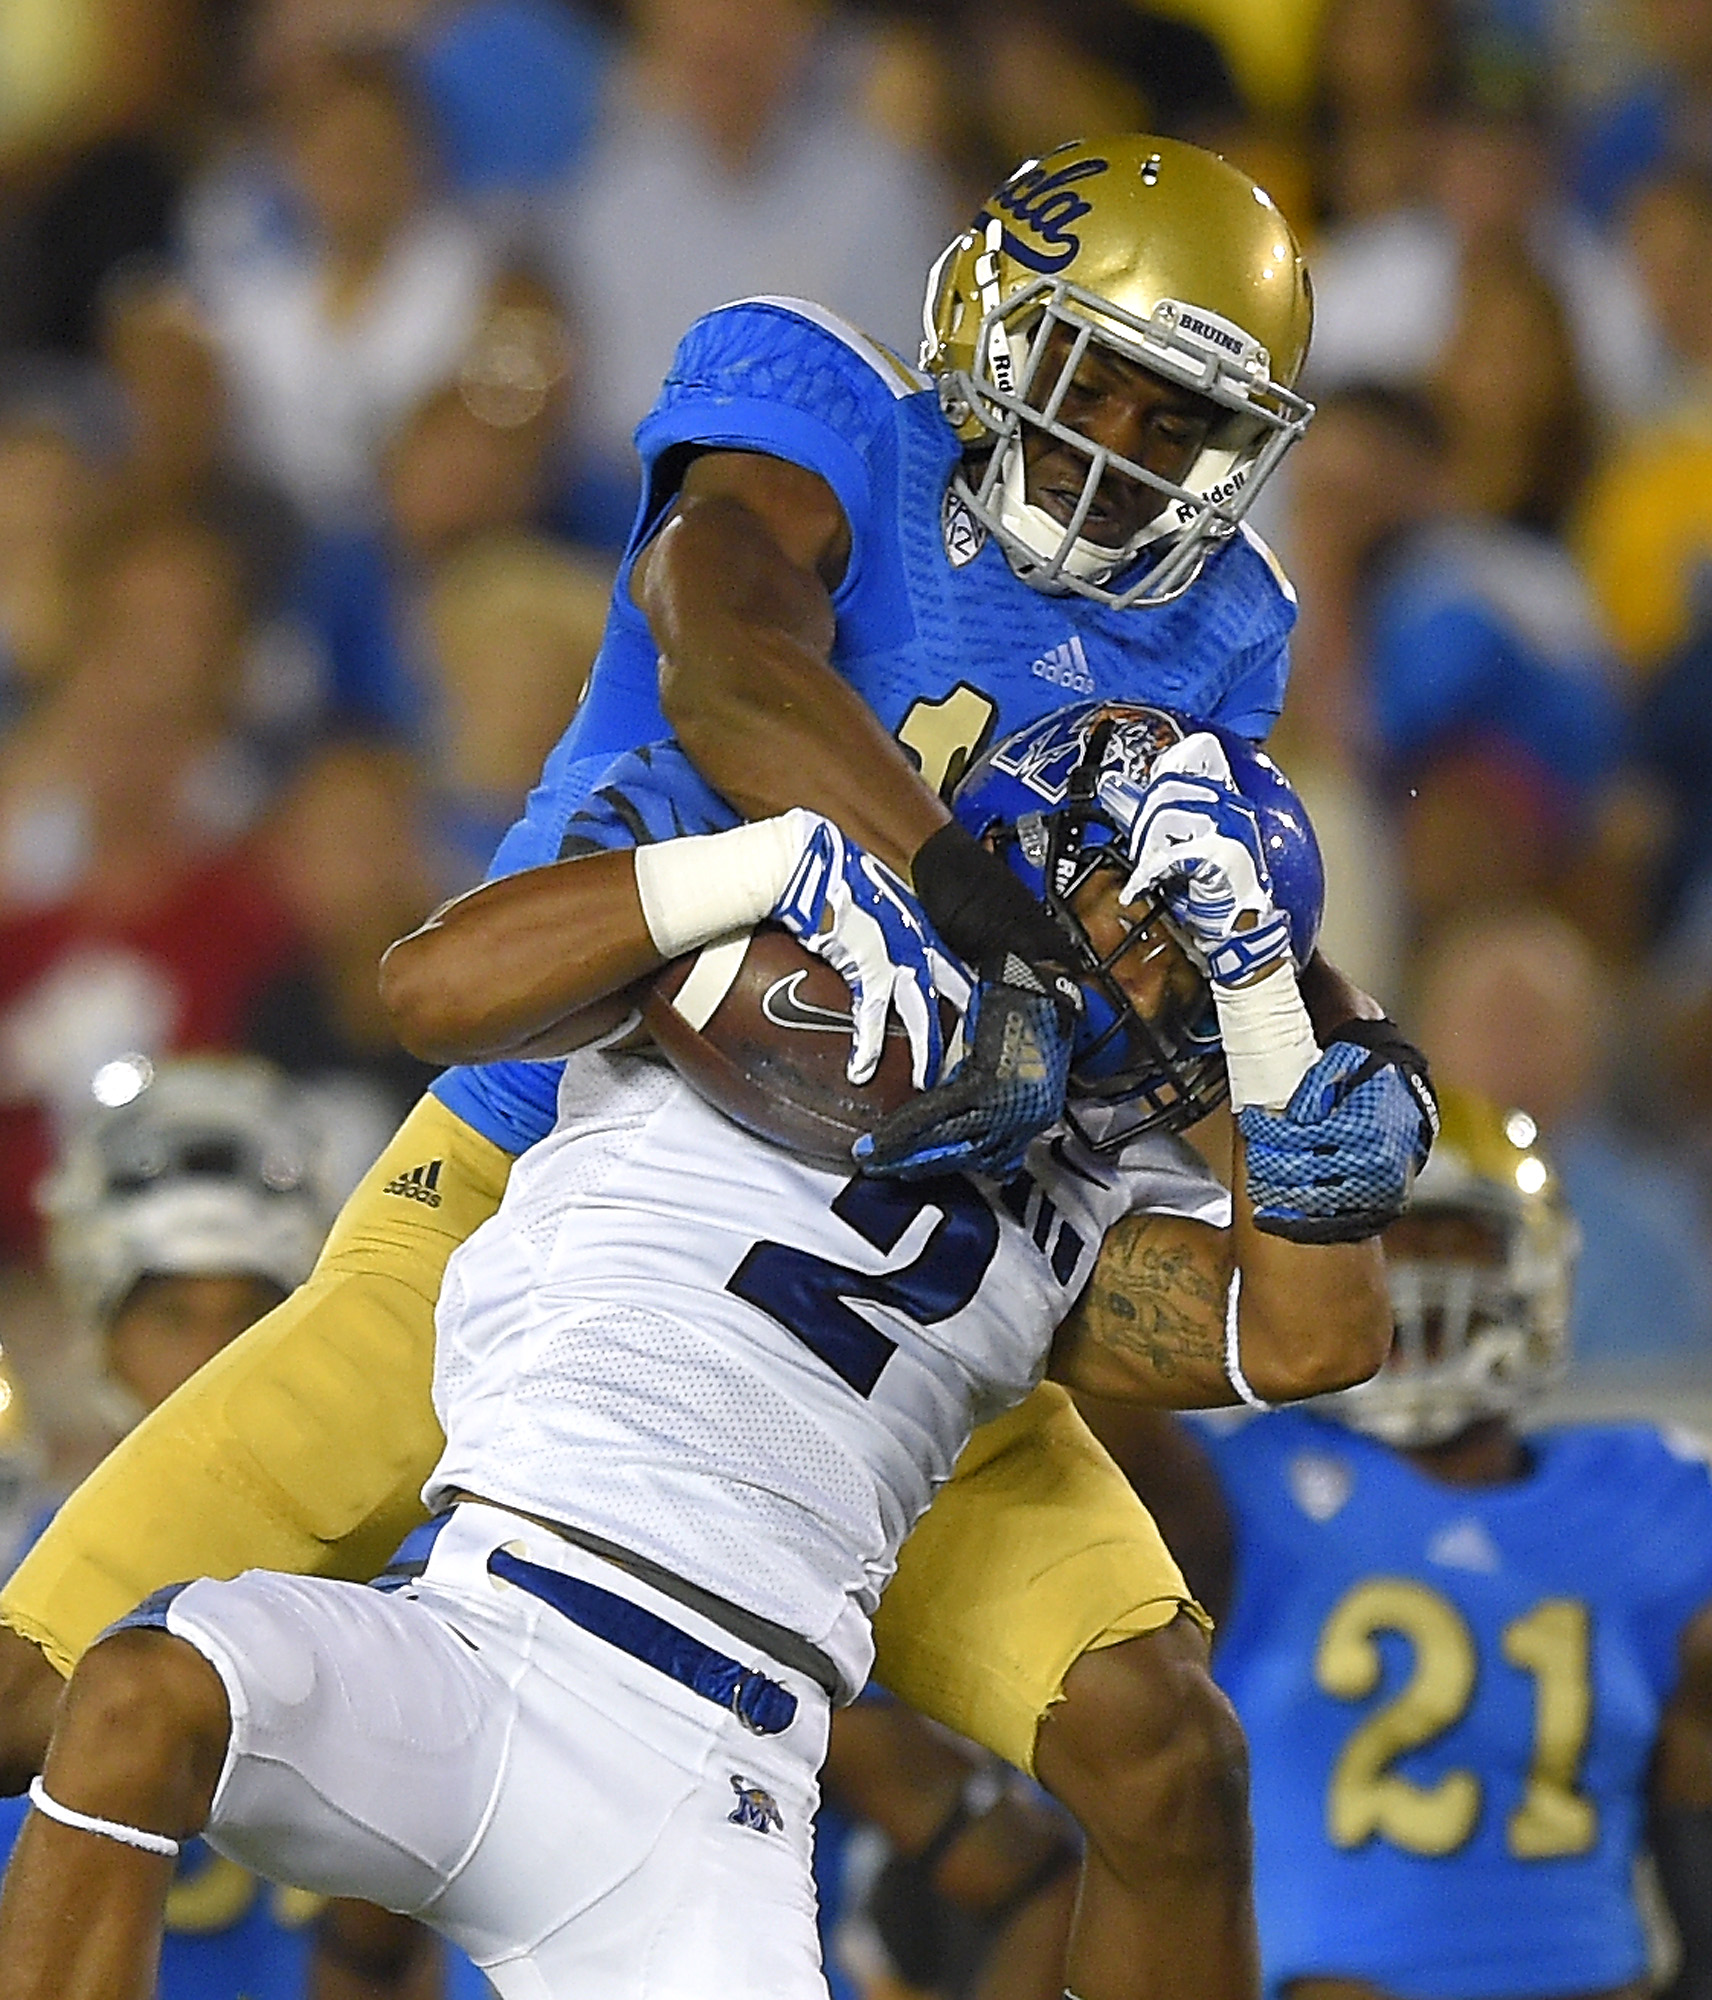 Fabian Moreau was selected by the Redskins in the third round of the 2017 NFL draft. Memphis wide receiver Joe Craig, below, makes a catch as UCLA defensive back Fabian Moreau tackles him during the first half of an NCAA college football game, Saturday, Sept. 6, 2014, in Pasadena, Calif. (AP File Photo/Mark J. Terrill)